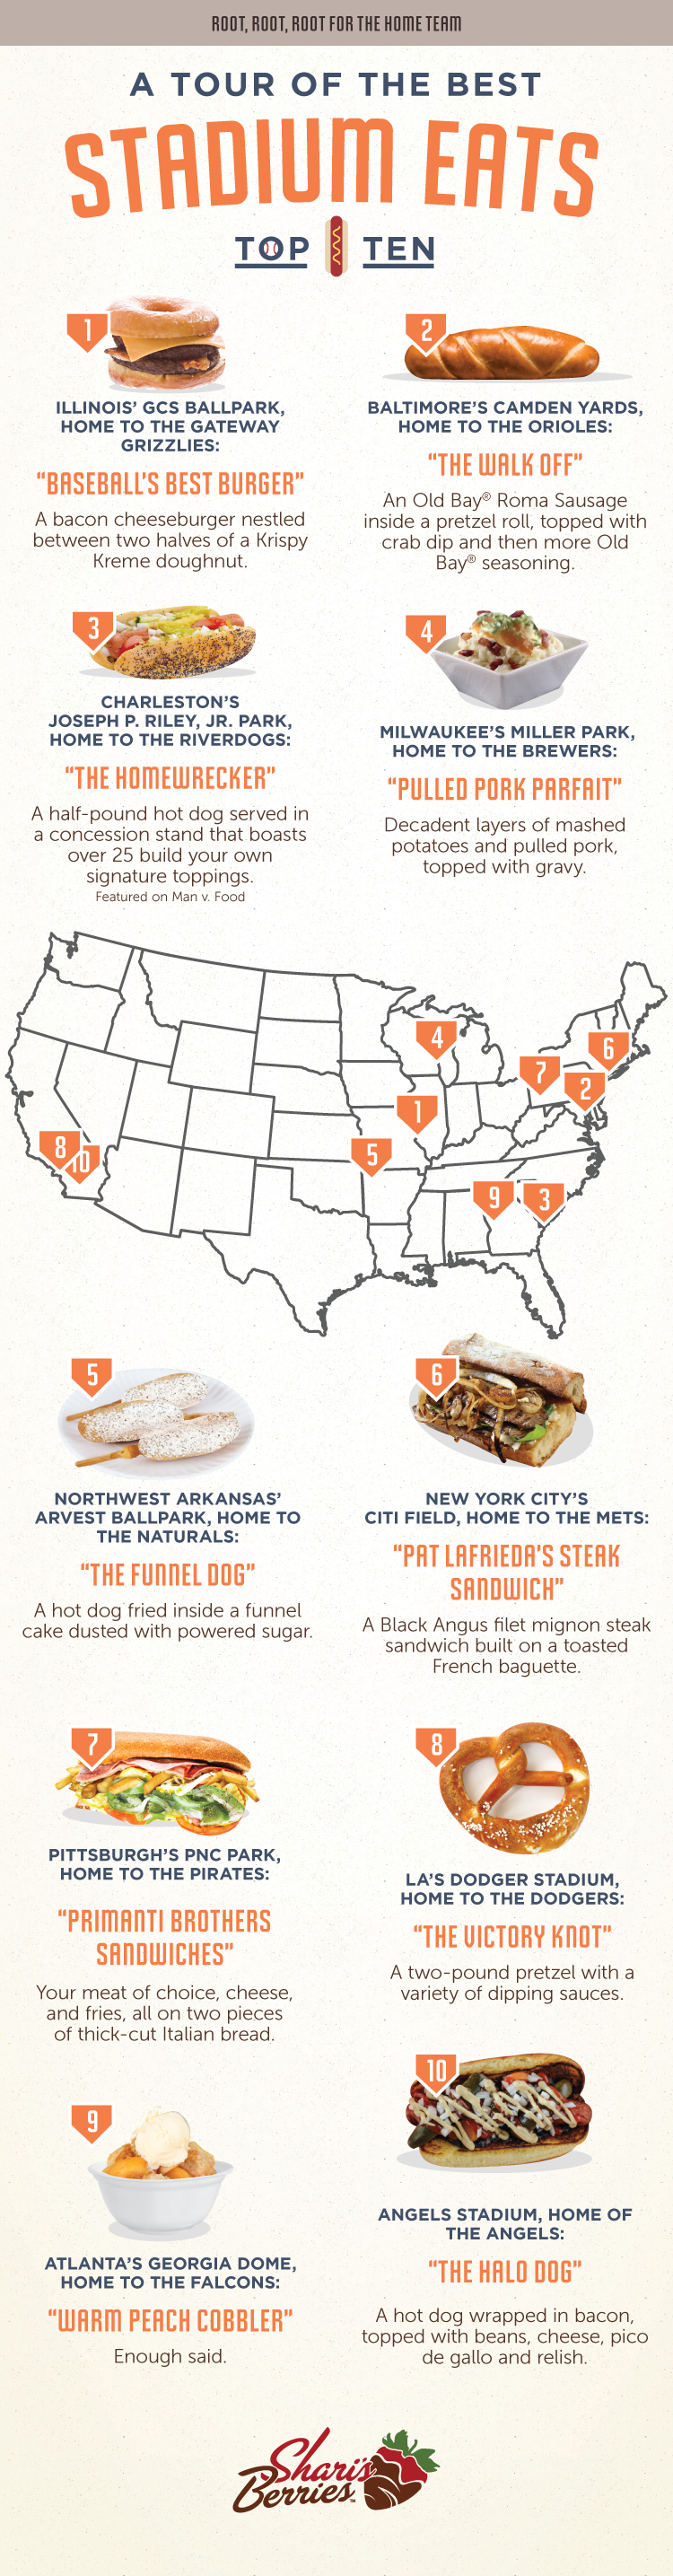 Infographic: A Tour of the Best Stadium Eats